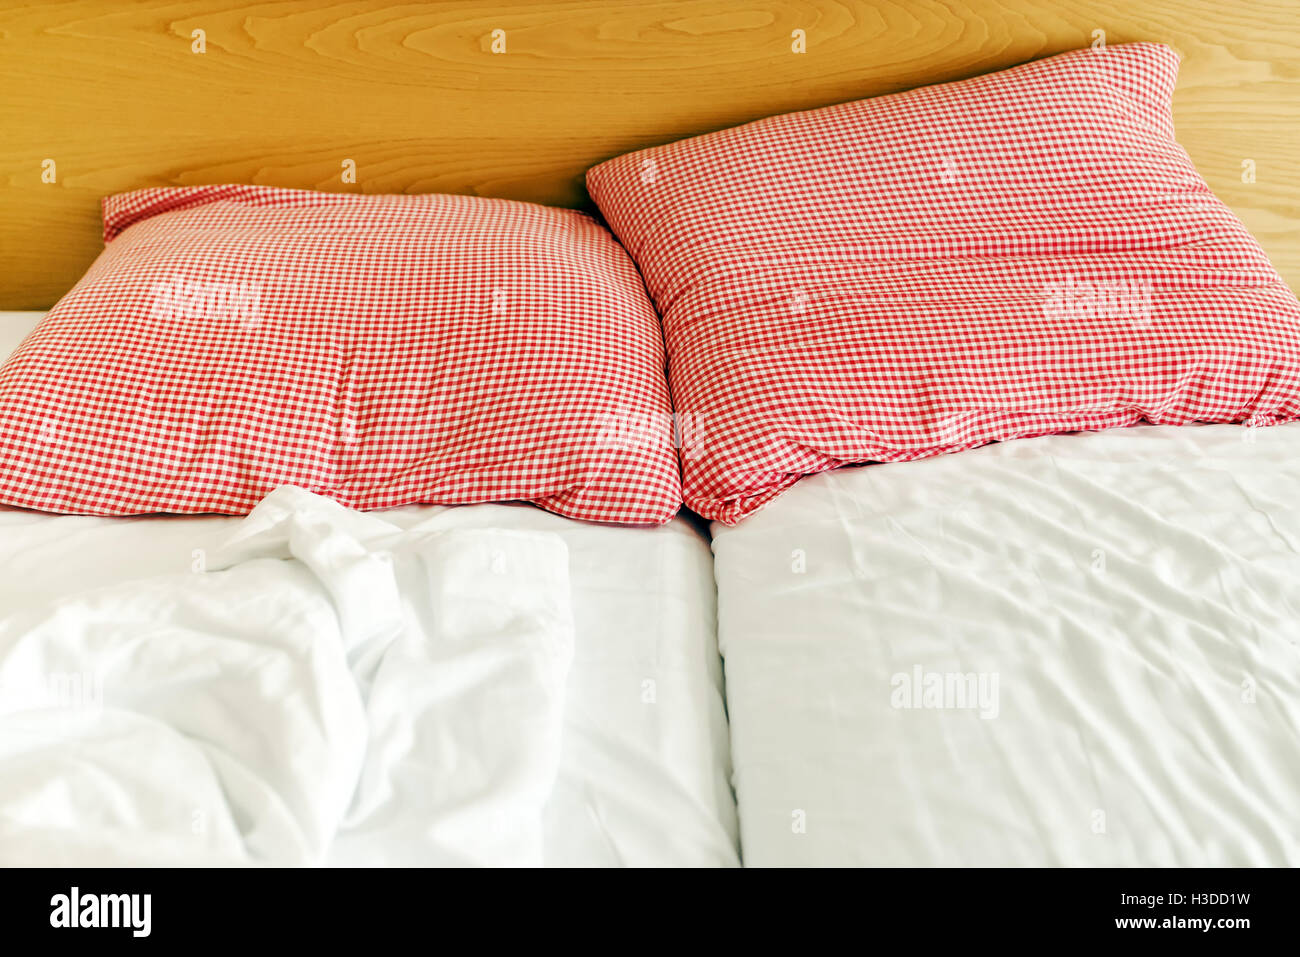 Three star hotel bed and pillows with crumpled sheets in the morning - Stock Image